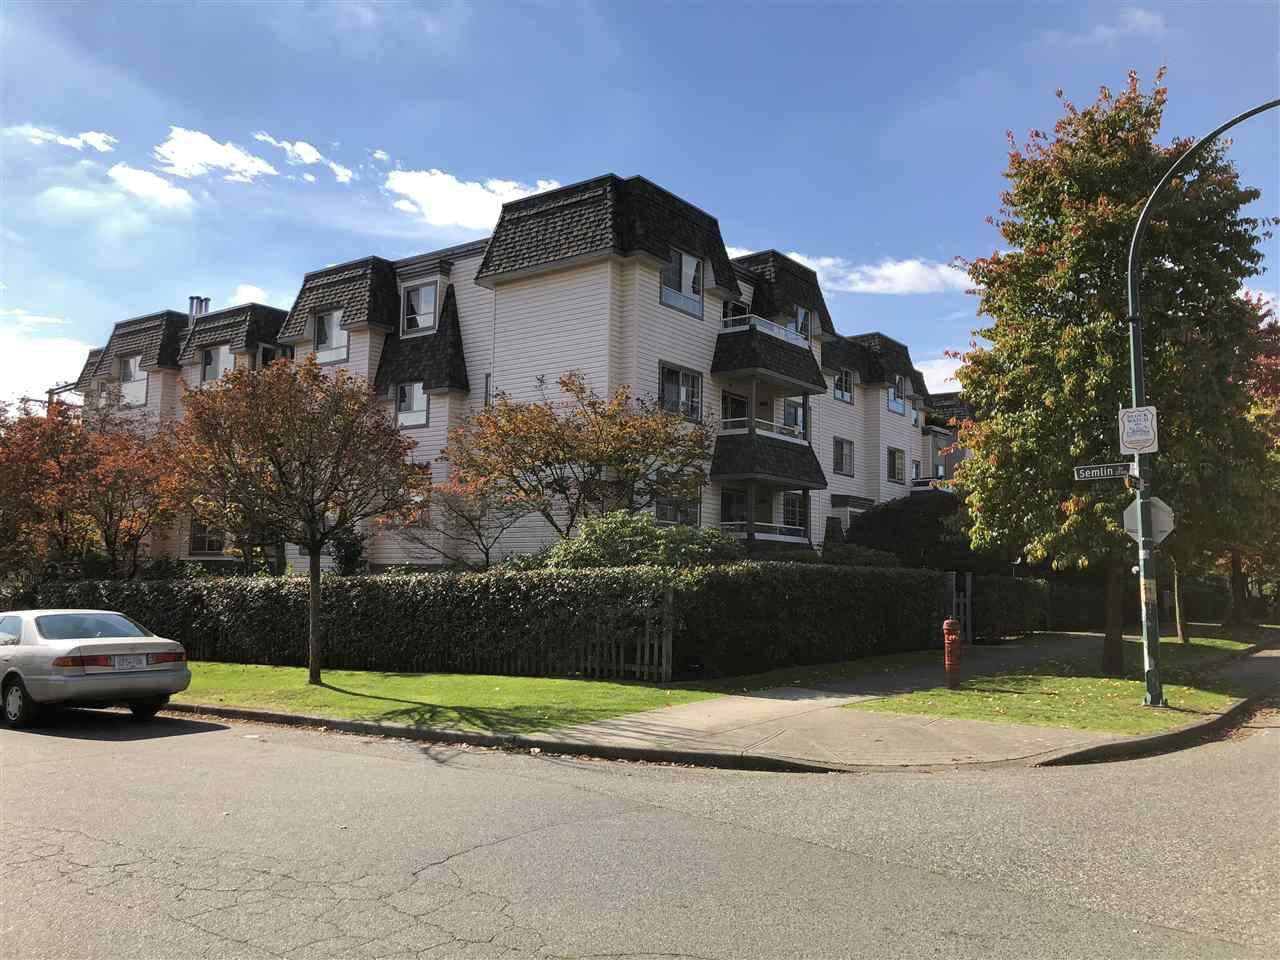 """Main Photo: 103 1950 E 11TH Avenue in Vancouver: Grandview VE Condo for sale in """"LAKEVIEW PLACE"""" (Vancouver East)  : MLS®# R2314481"""